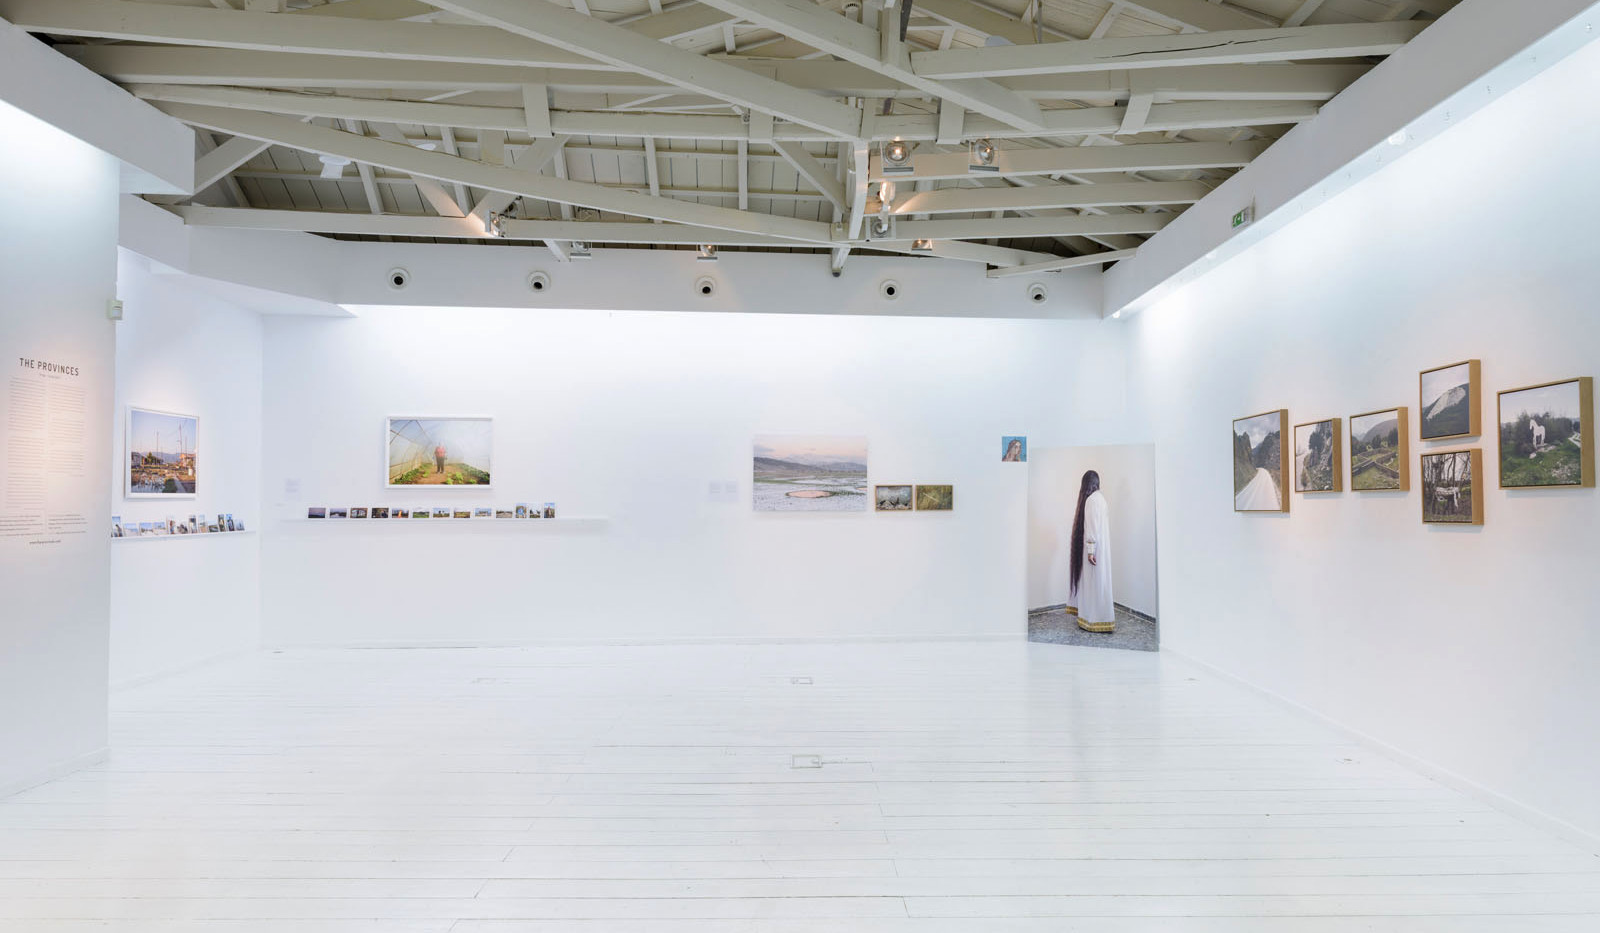 """Exhibition """"The Provinces""""at TAF, Athens, 2019. Curated by Kostas Ioannidis, Nicole Leventi and The Provinces Team   Έκθεση """"The Provinces"""", TAF Τhe Art Foundation, Αθήνα, 2019. Επιμέλεια: Κώστας Ιωαννίδης, Νικόλ Λεβέντη και η ομάδα The Provinces."""